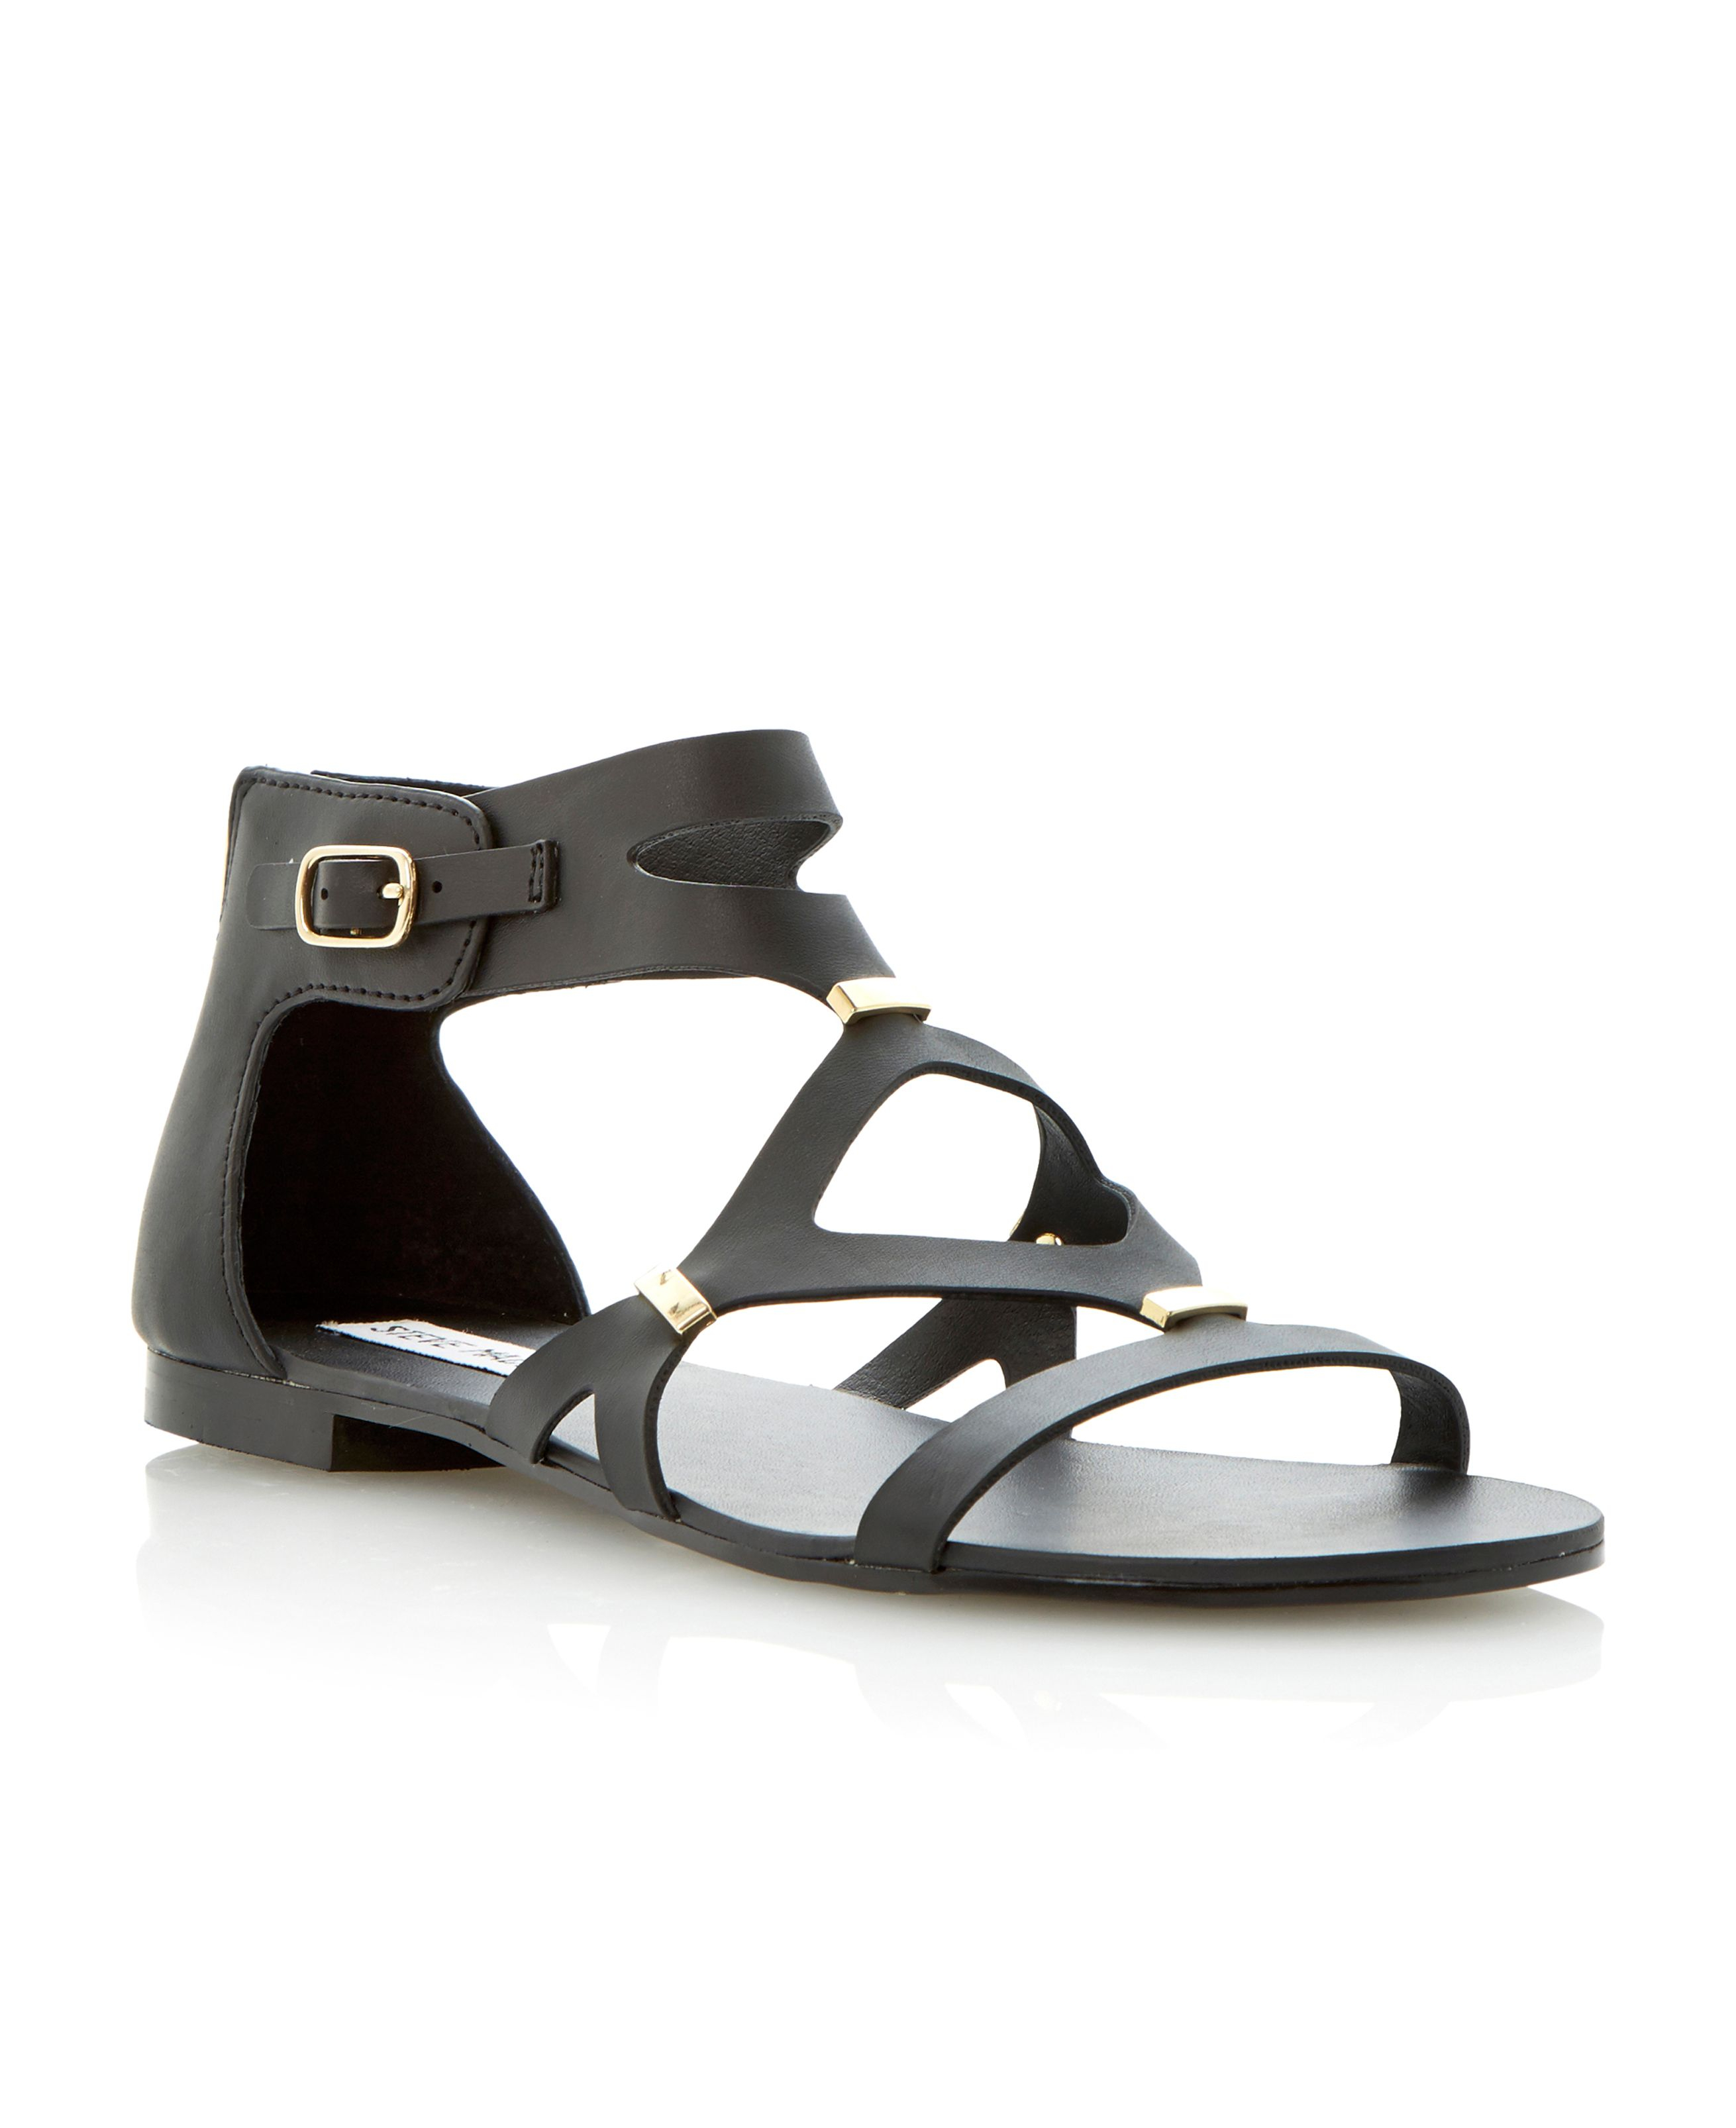 steve madden comma leather strappy gladiator flat sandals